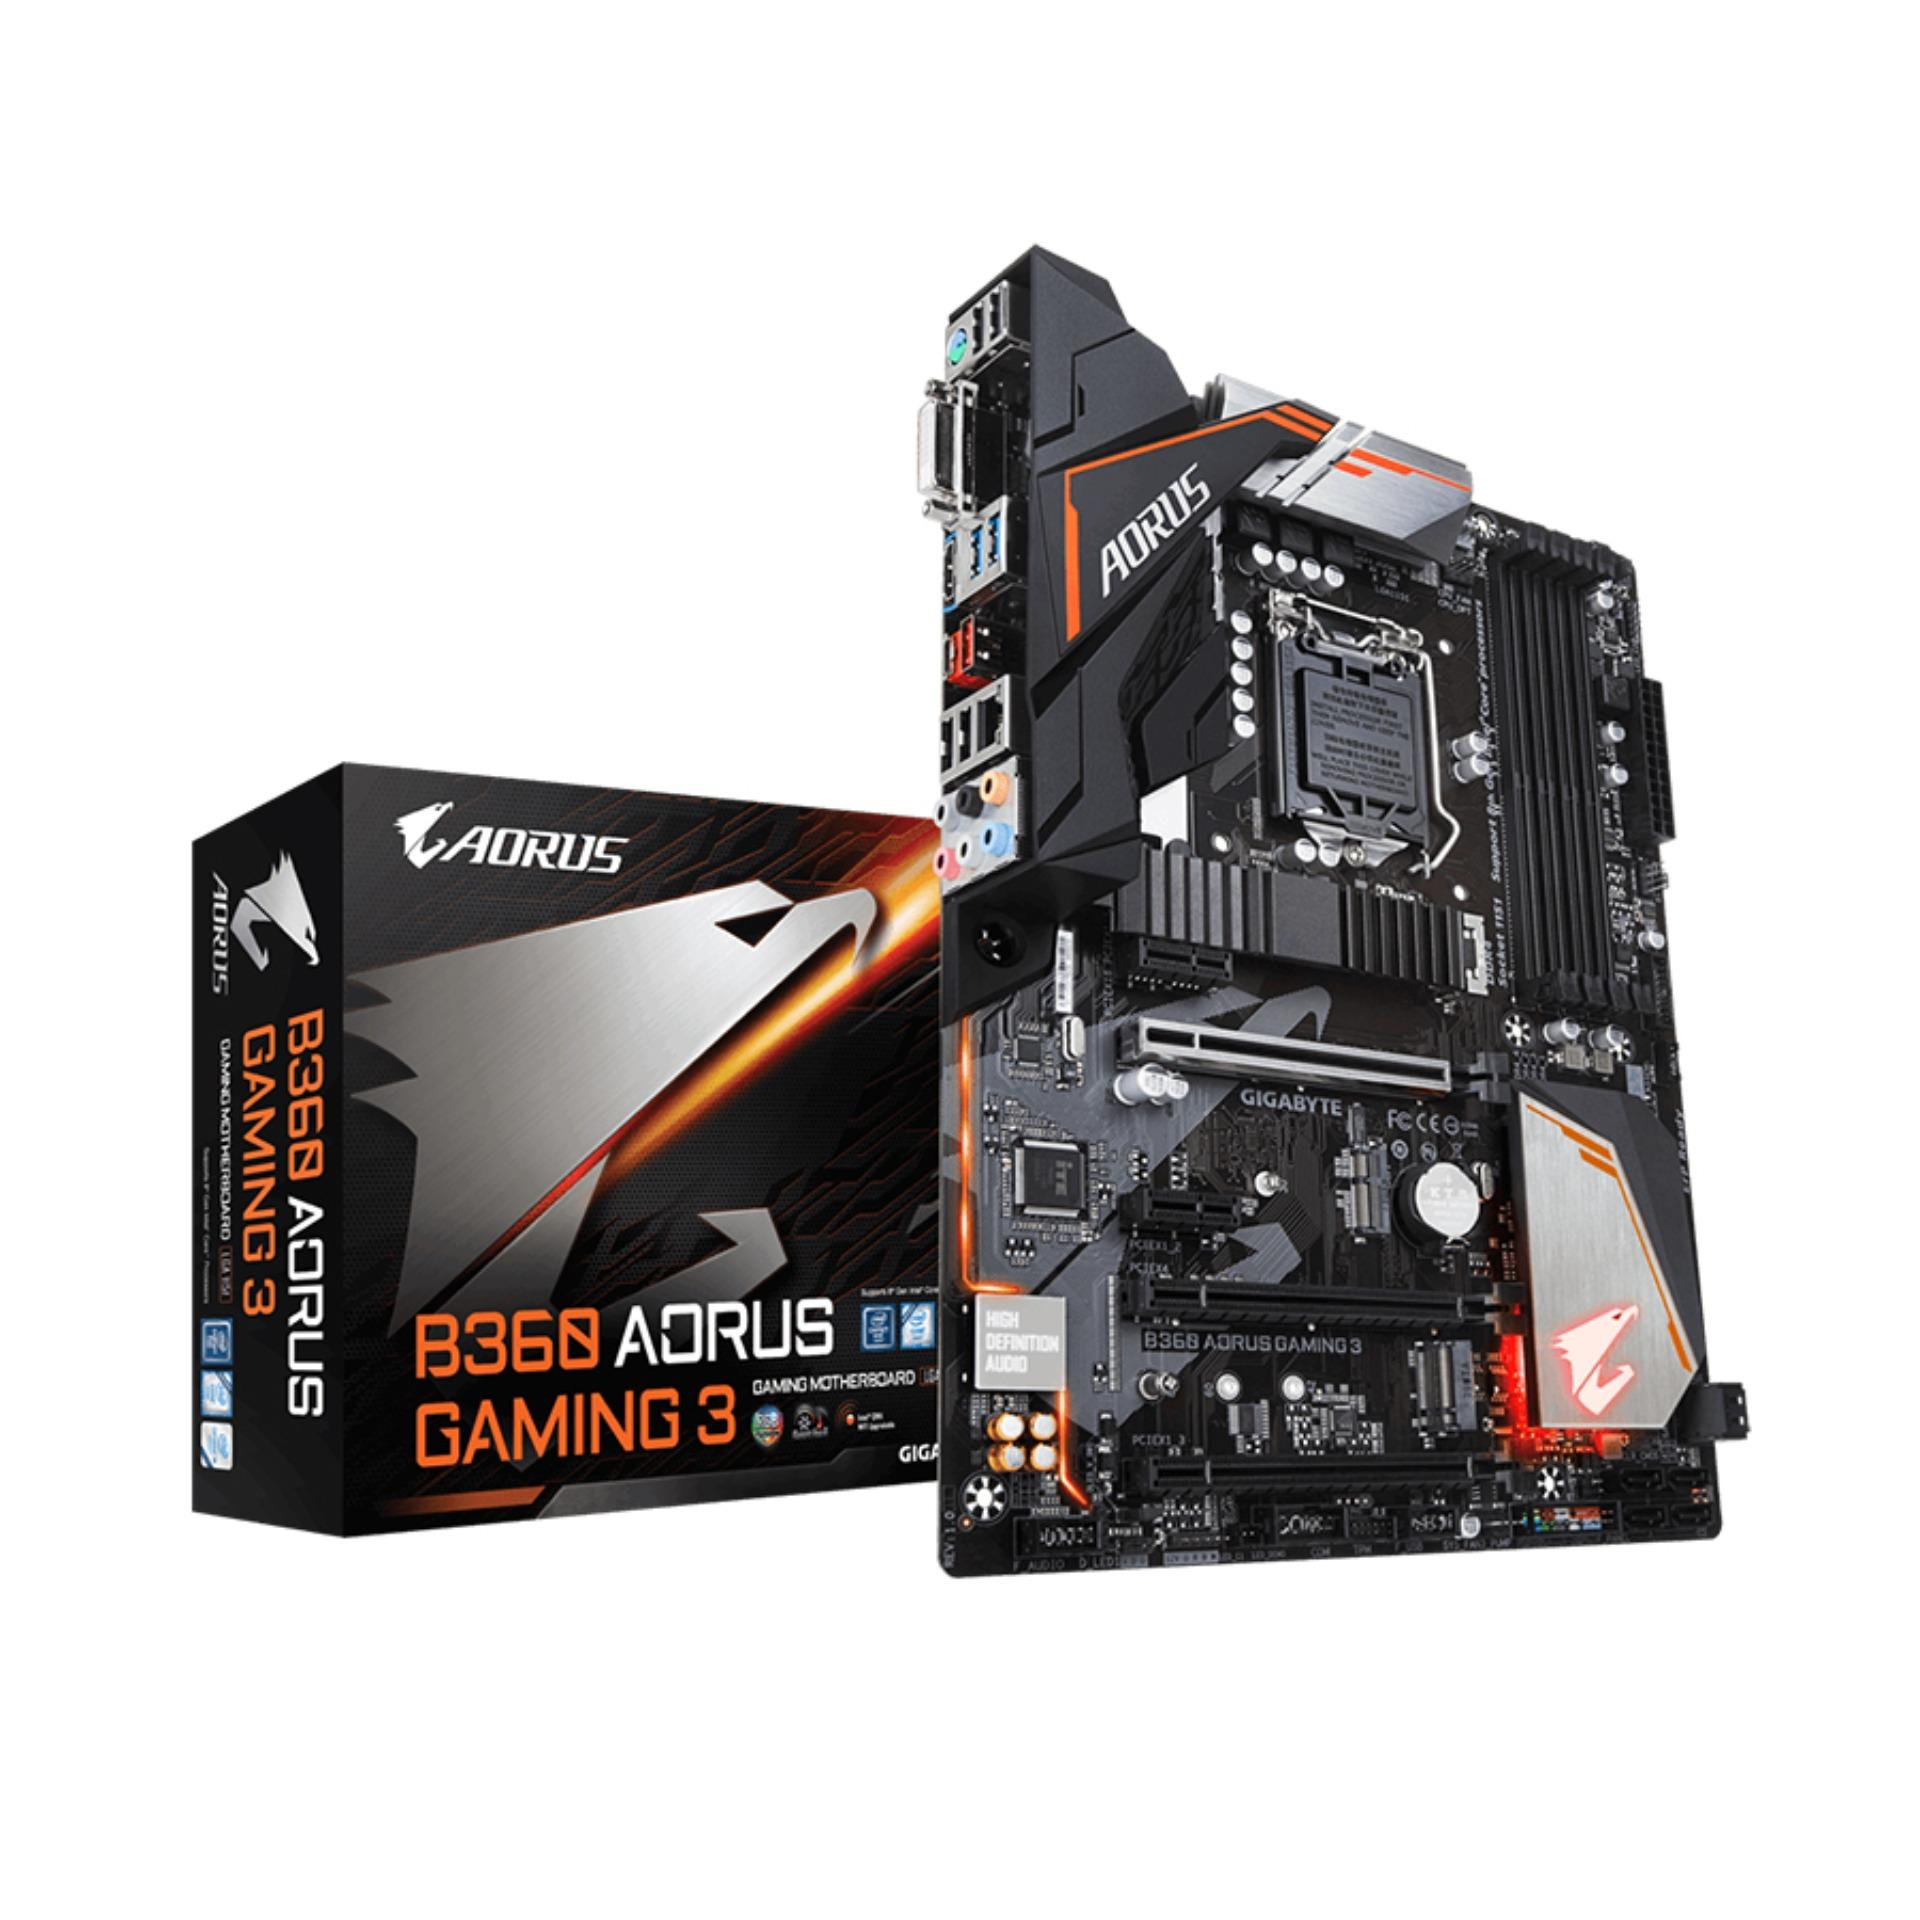 Gigabyte Ga Z270mx Gaming 5 Motherboard Philippines Price Specs Amd A8 7650k Kaveri Quad Core 33ghz Fm2 Box Aorus B360 3 Socket 1151 Pcie Ddr4